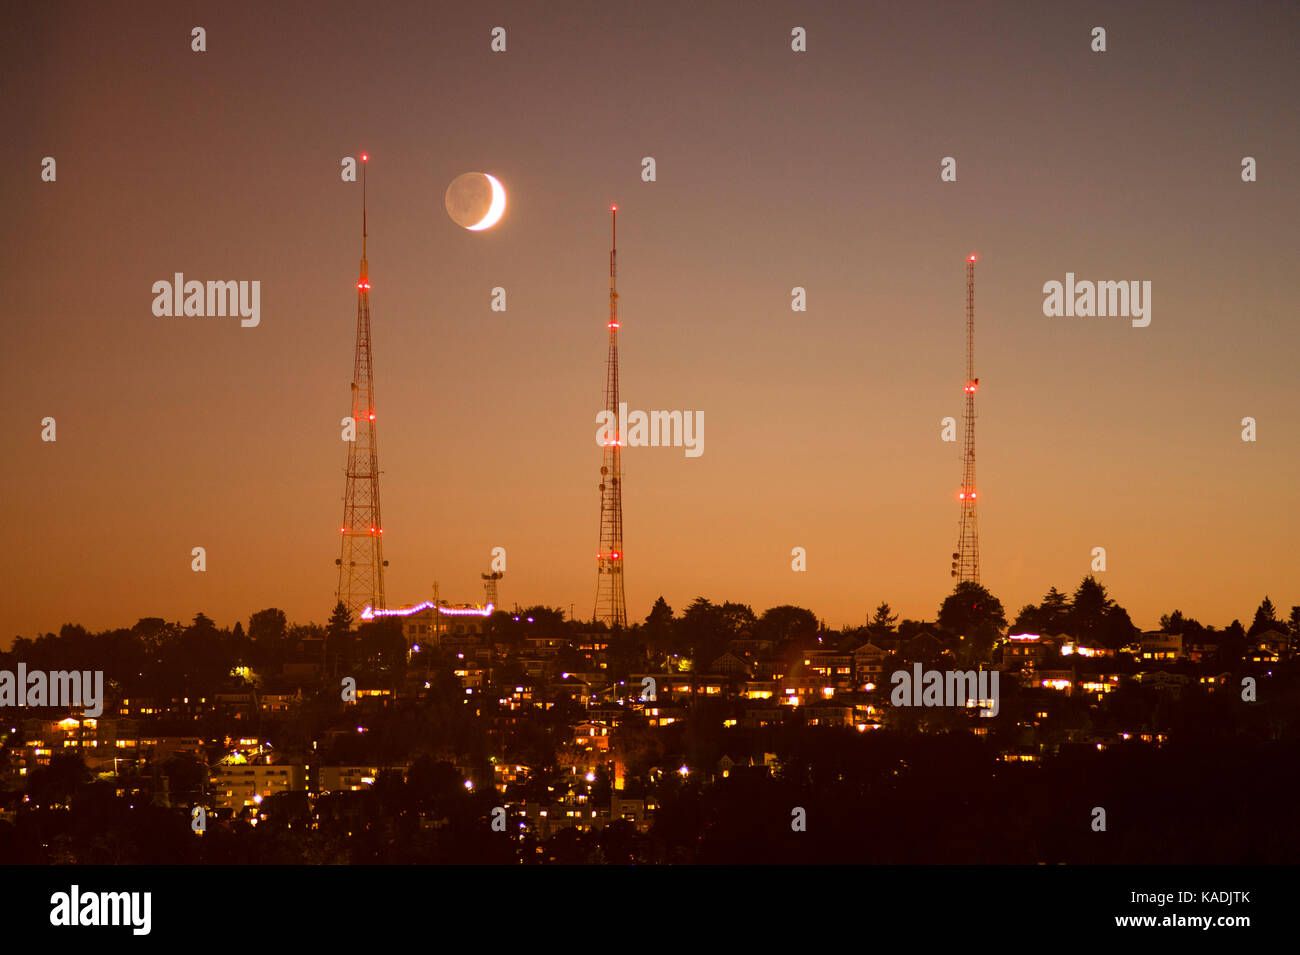 TV towers silhouetted at sunset with crescent moon setting over Queen Anne Hill - Stock Image